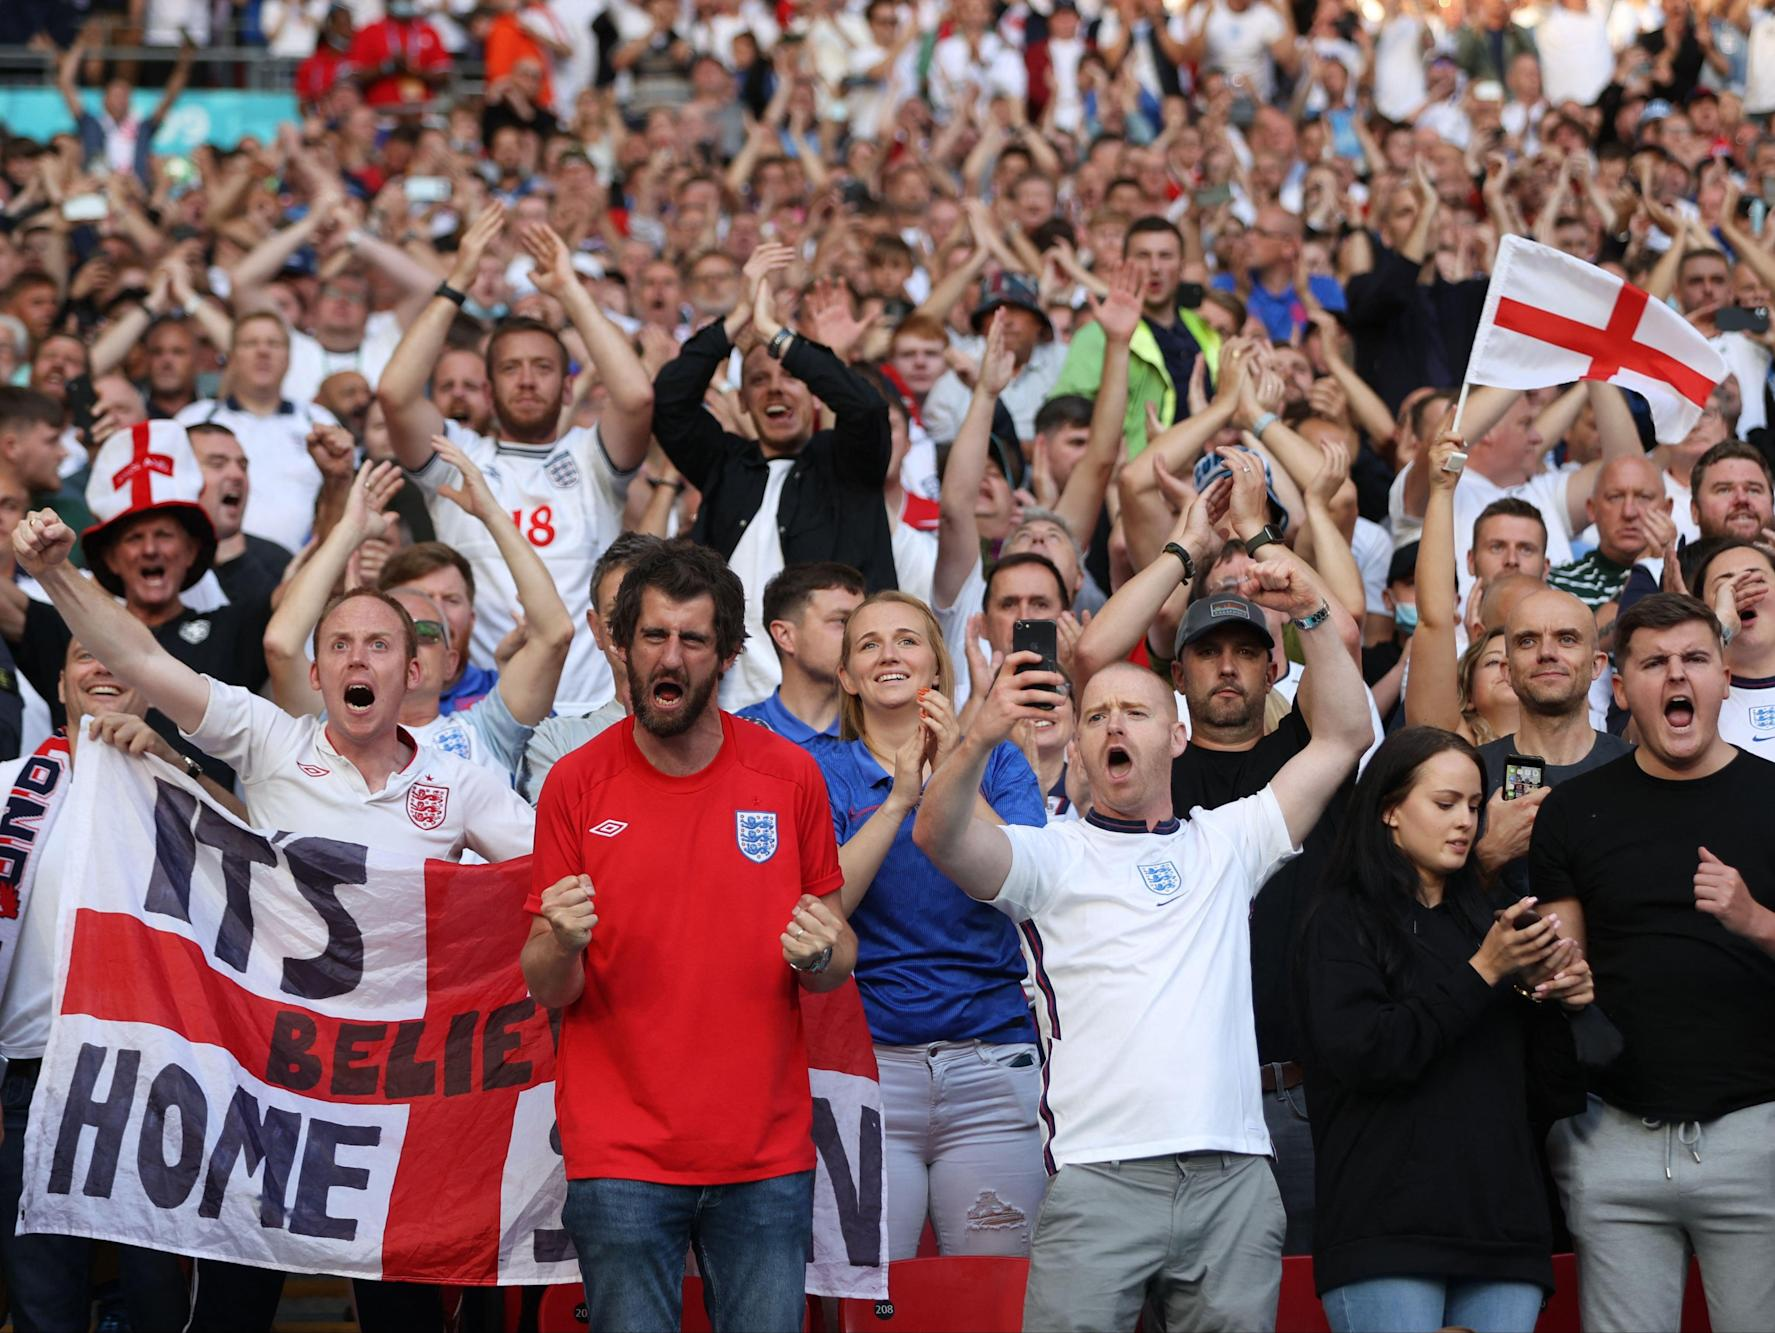 Euro 2020 celebrations 'driving up' Covid cases across UK, scientists say